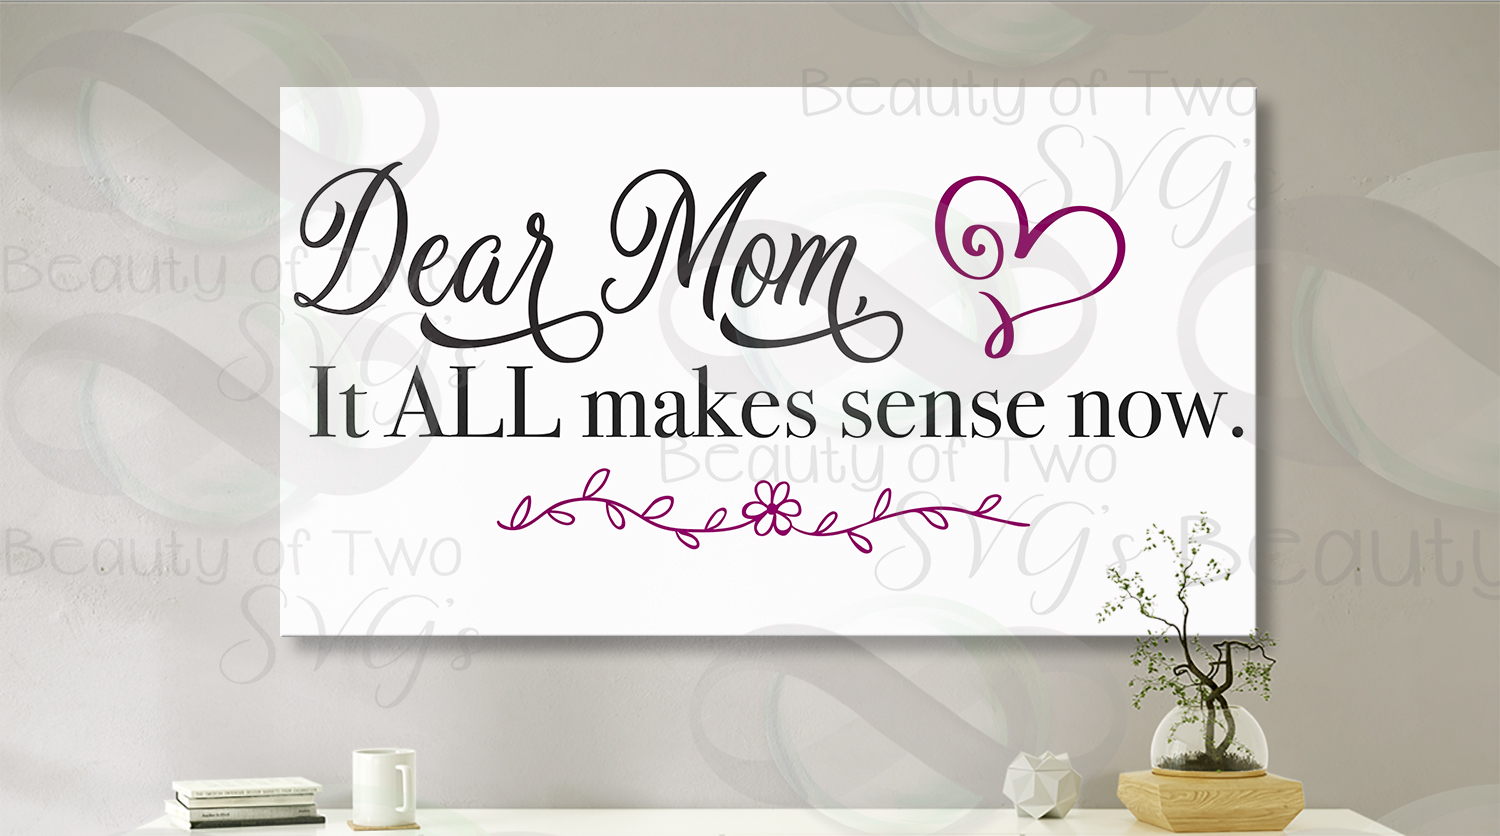 Mothers Day svg & png, Dear Mom svg, Mom love svg, Love Mom example image 2